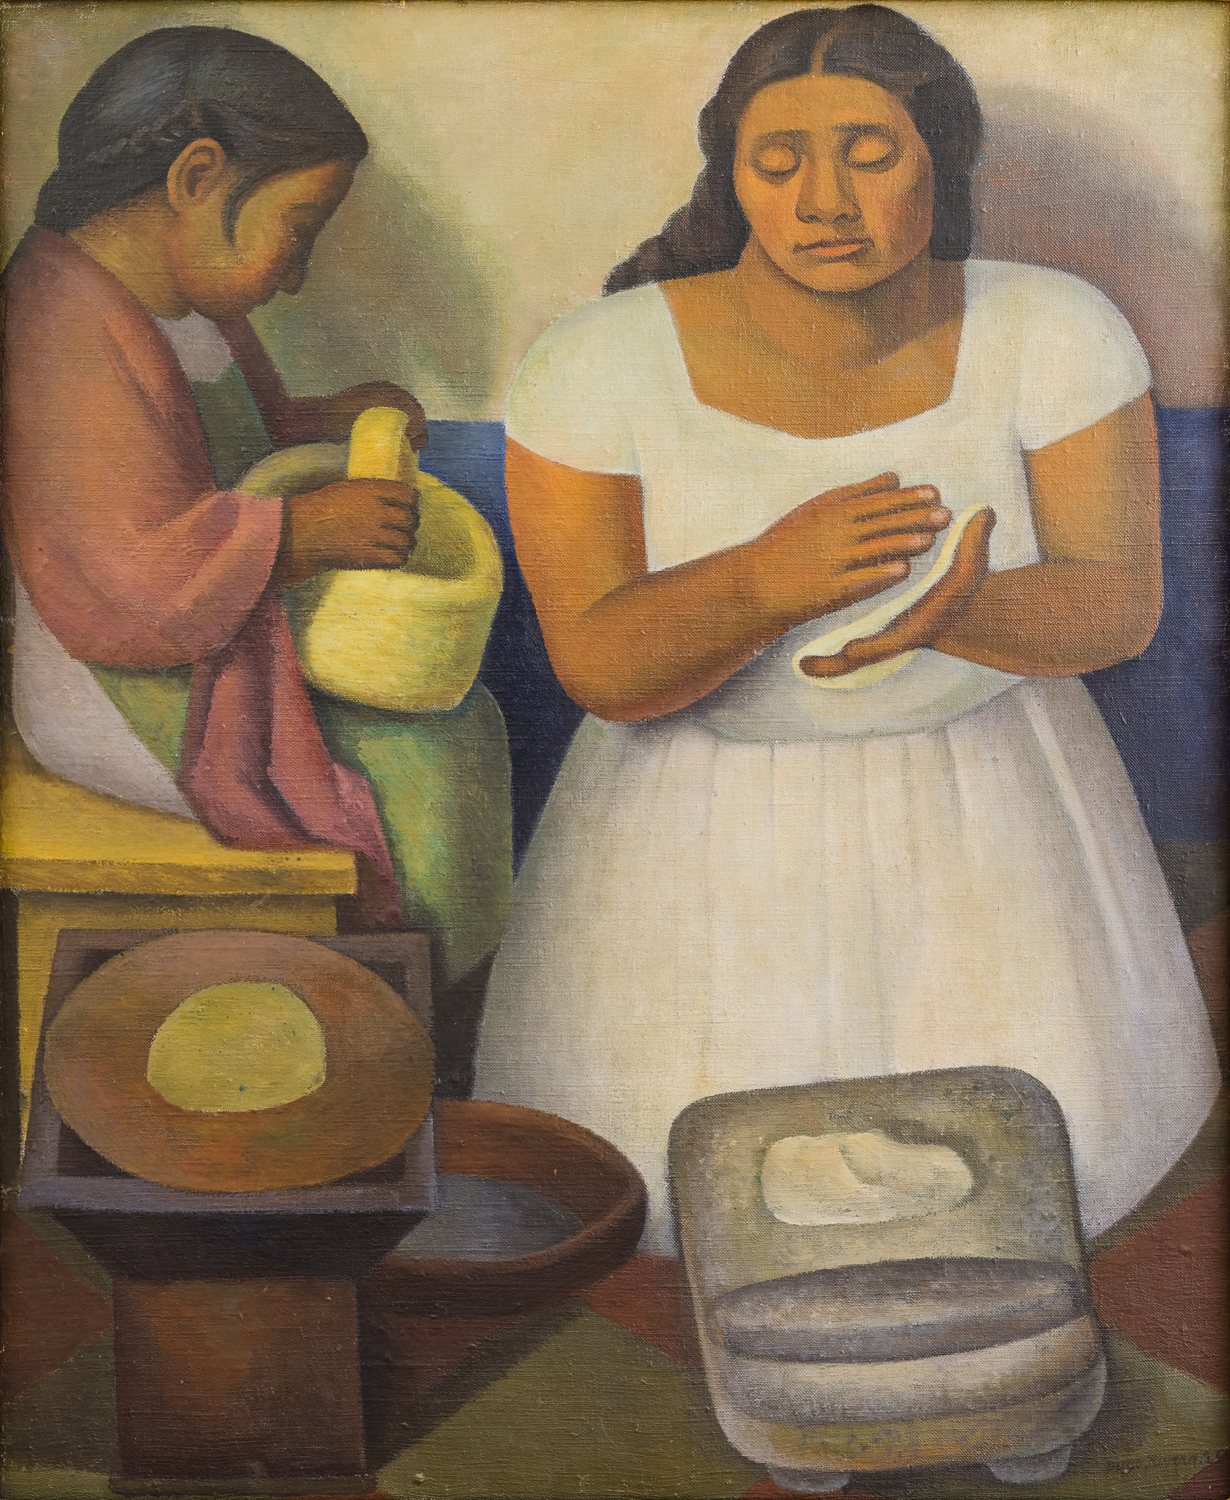 """La Tortillera"" by Frida Kahlo"